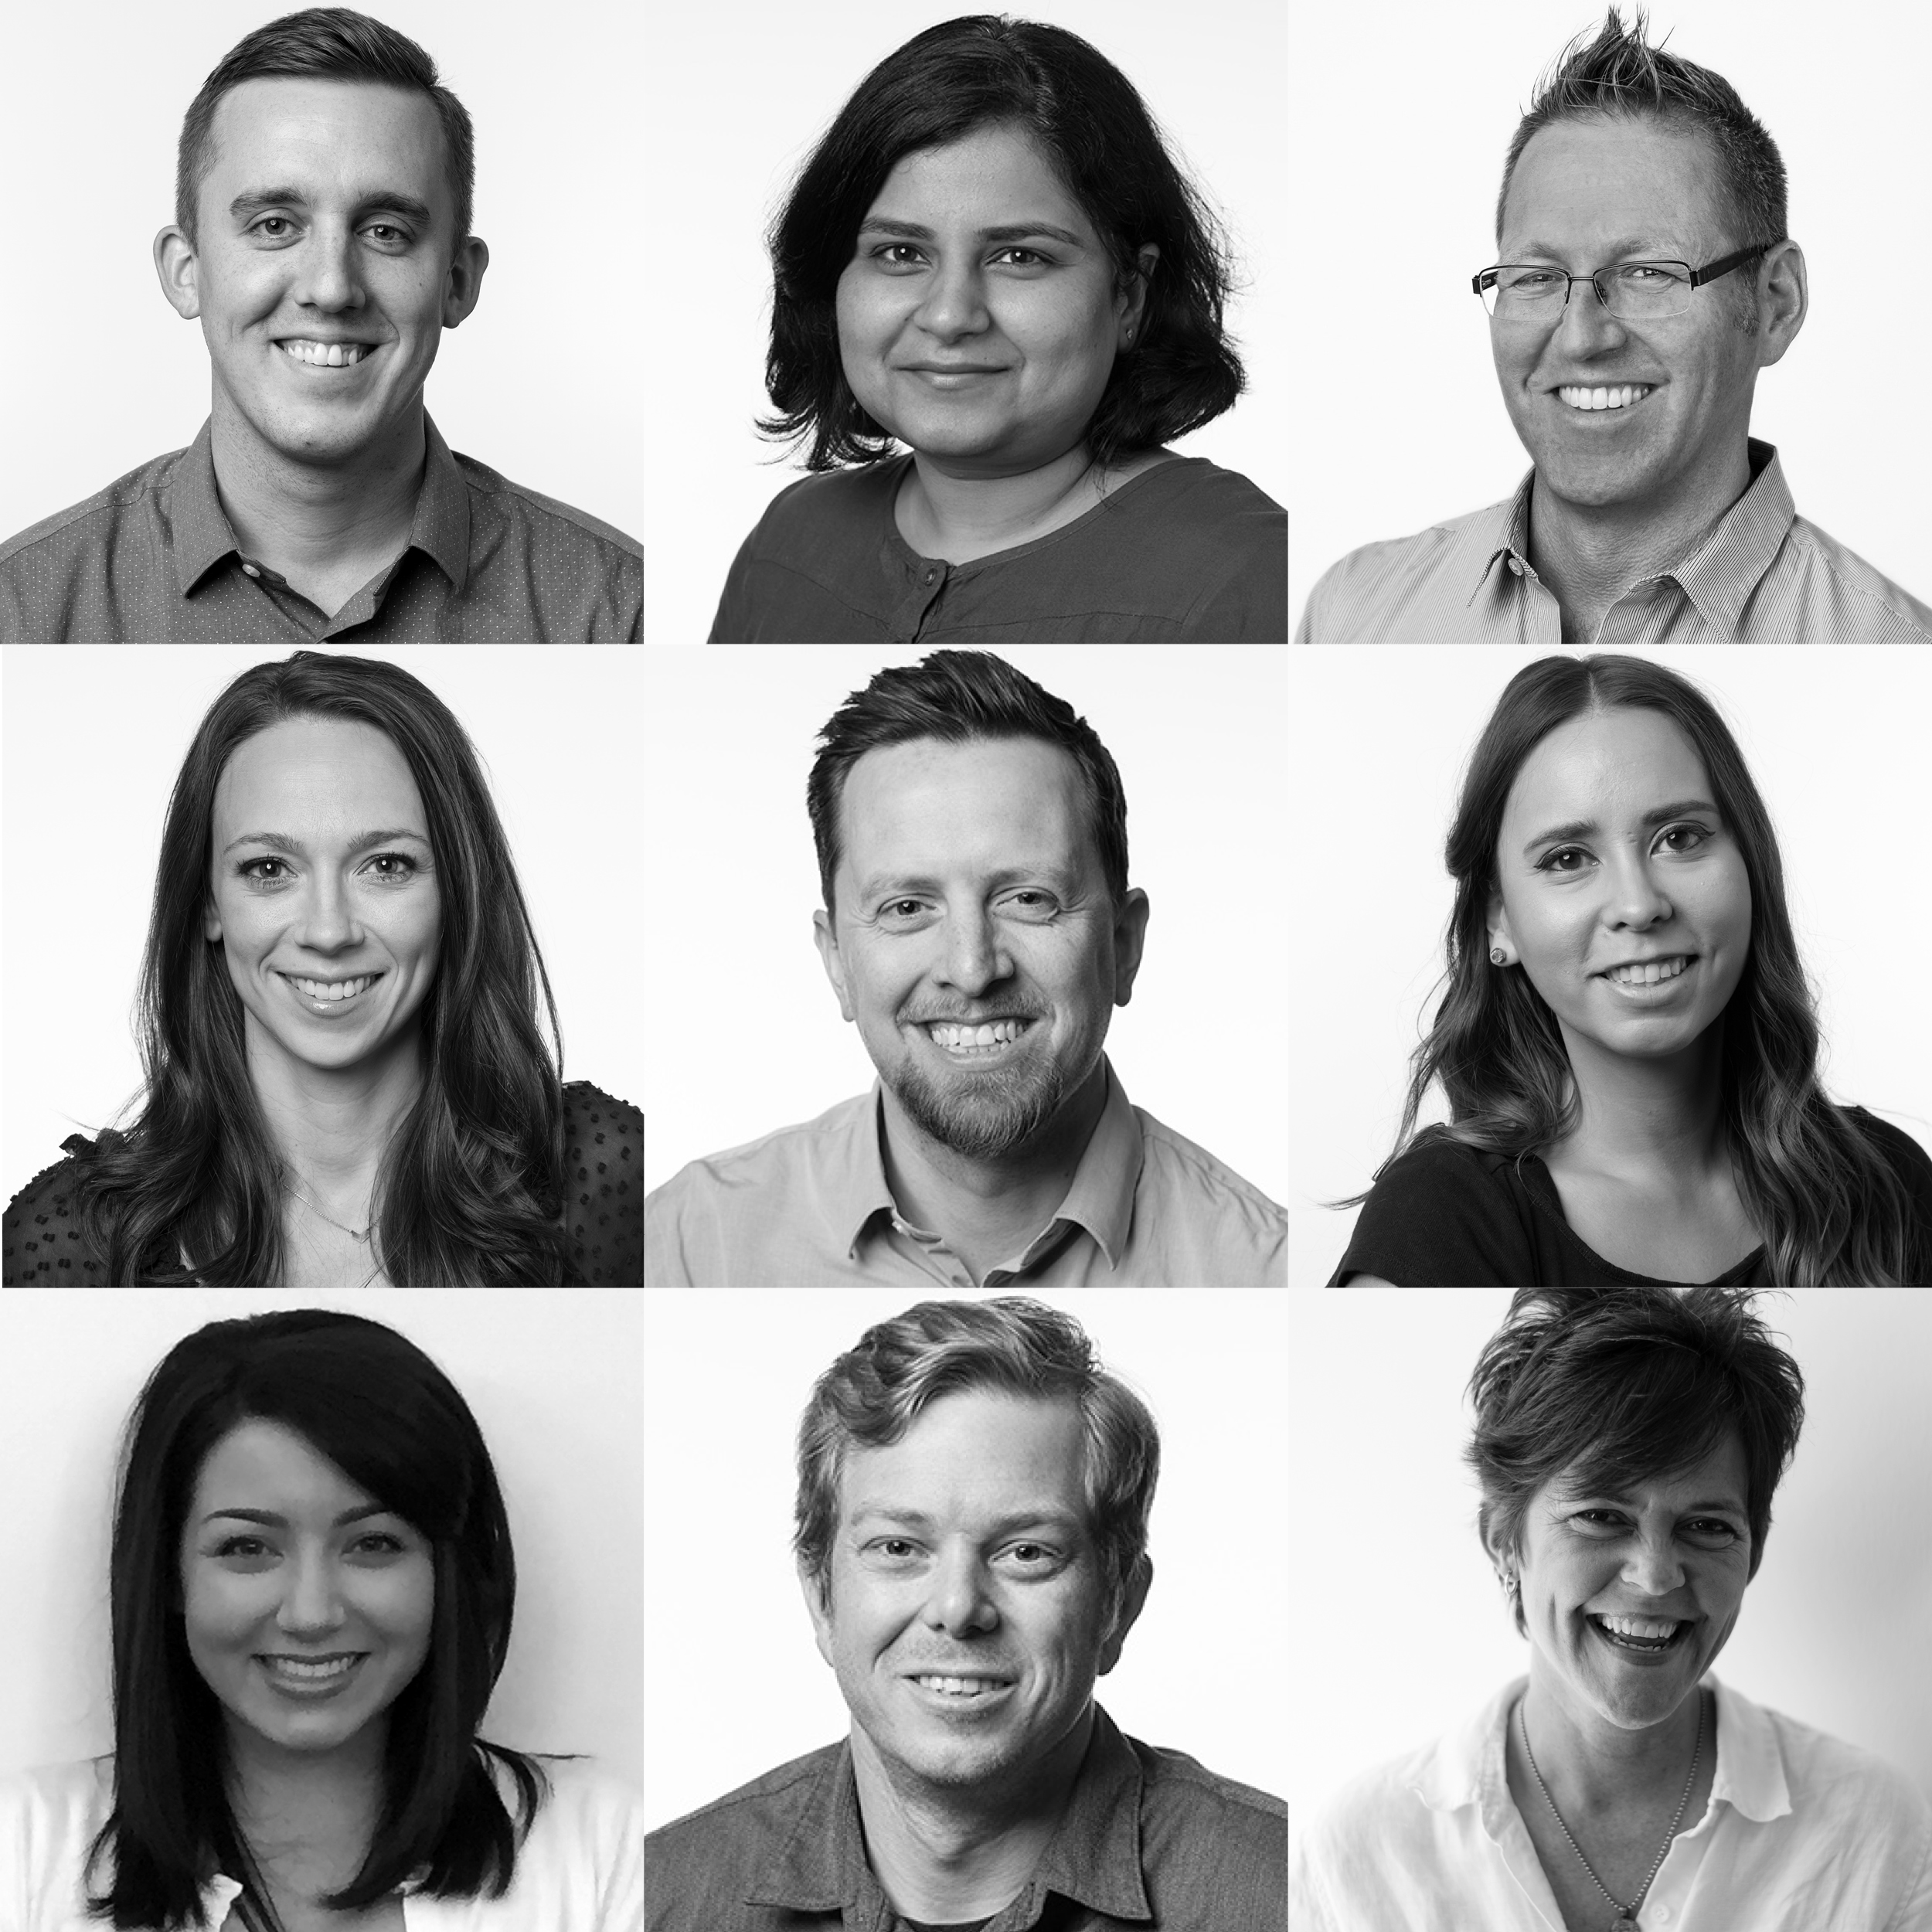 Tyler Stowell, AIA, Associate; Ekta Khuller, LEED AP, WELL AP, Associate; James Hadden, MBA, LEED AP, Principal; Katie Walker, RID, Associate; Michael Gilbert, RA, Associate; Marla Elm, RID, Associate; Amanda Simmons, IIDA, Associate; Paul Suttles, RA, LEED Green Associate, Associate; and Christi Grider, Associate